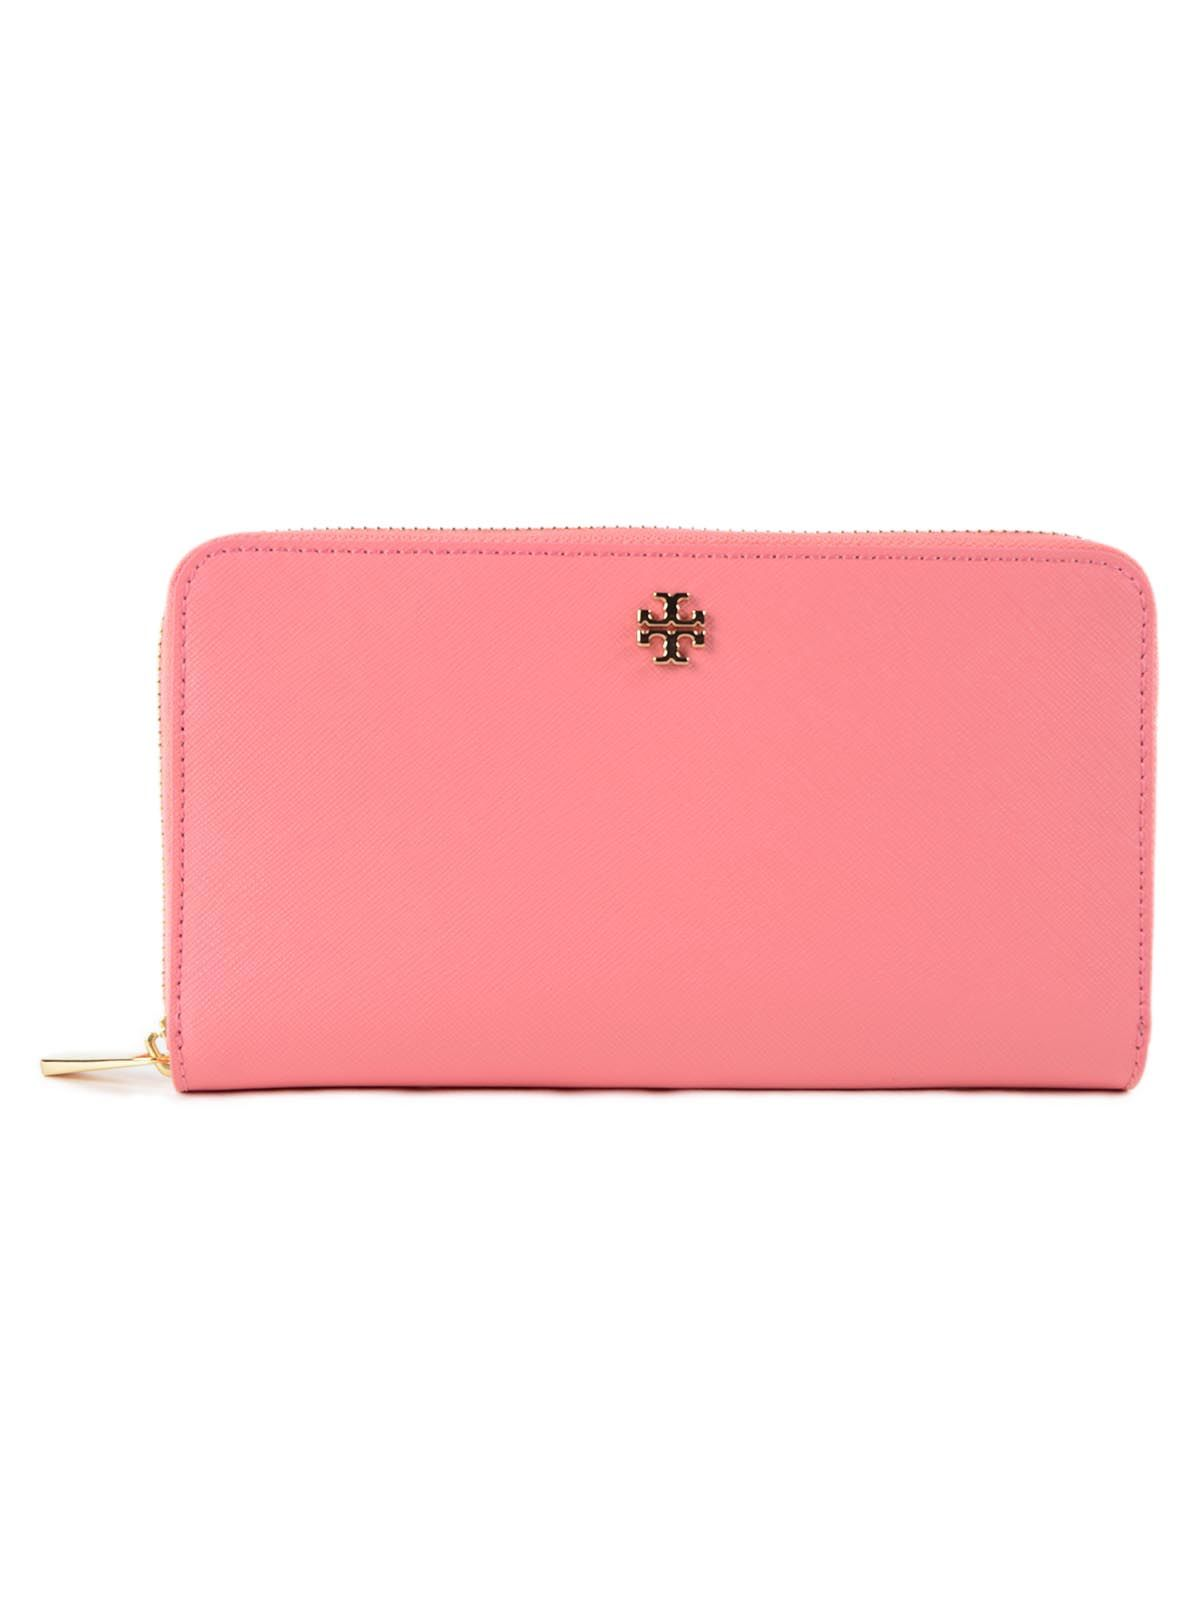 Tory Burch Robinson Zip Around Wallet